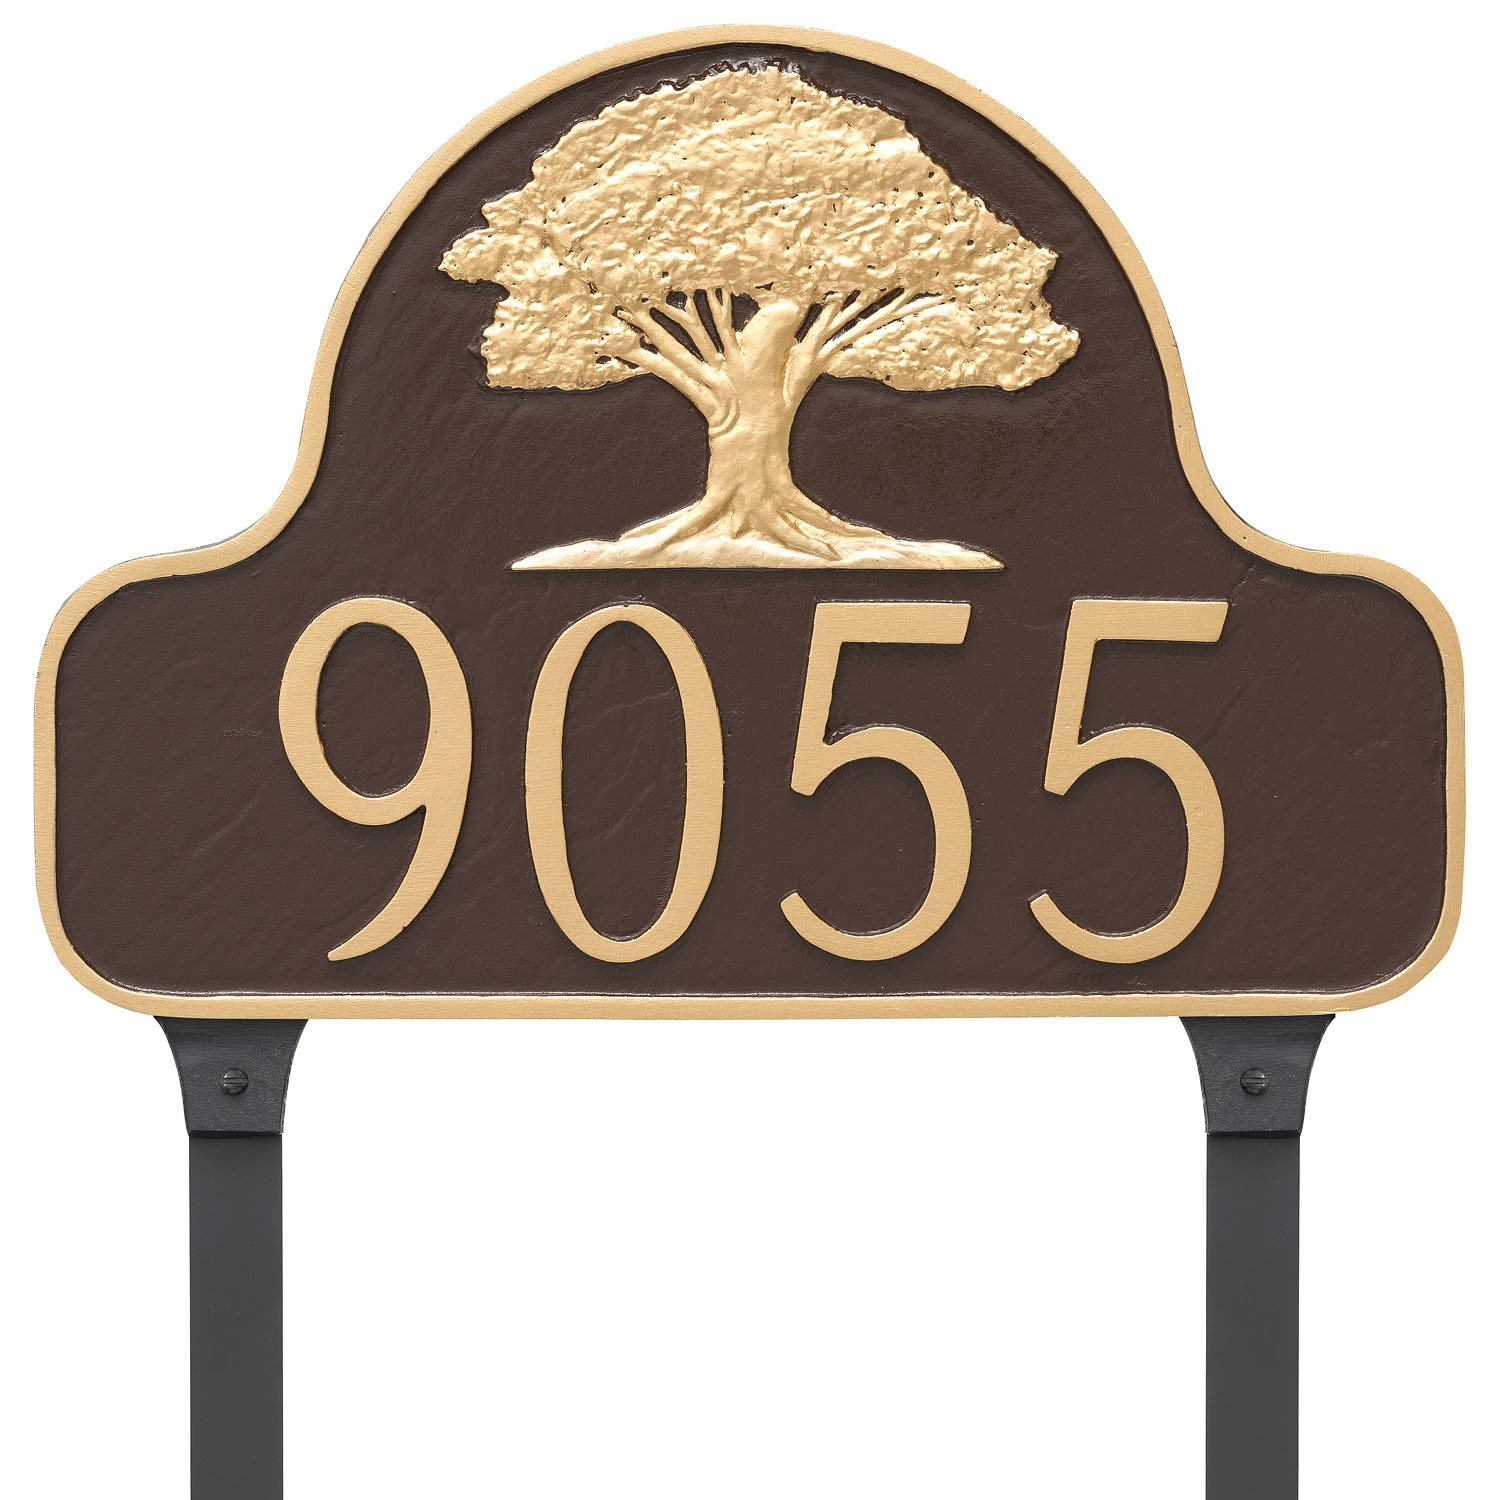 Montague Metal Oak Tree Arch Address Sign Plaque with Lawn Stakes, 11'' x 16'', Aged Bronze/Gold